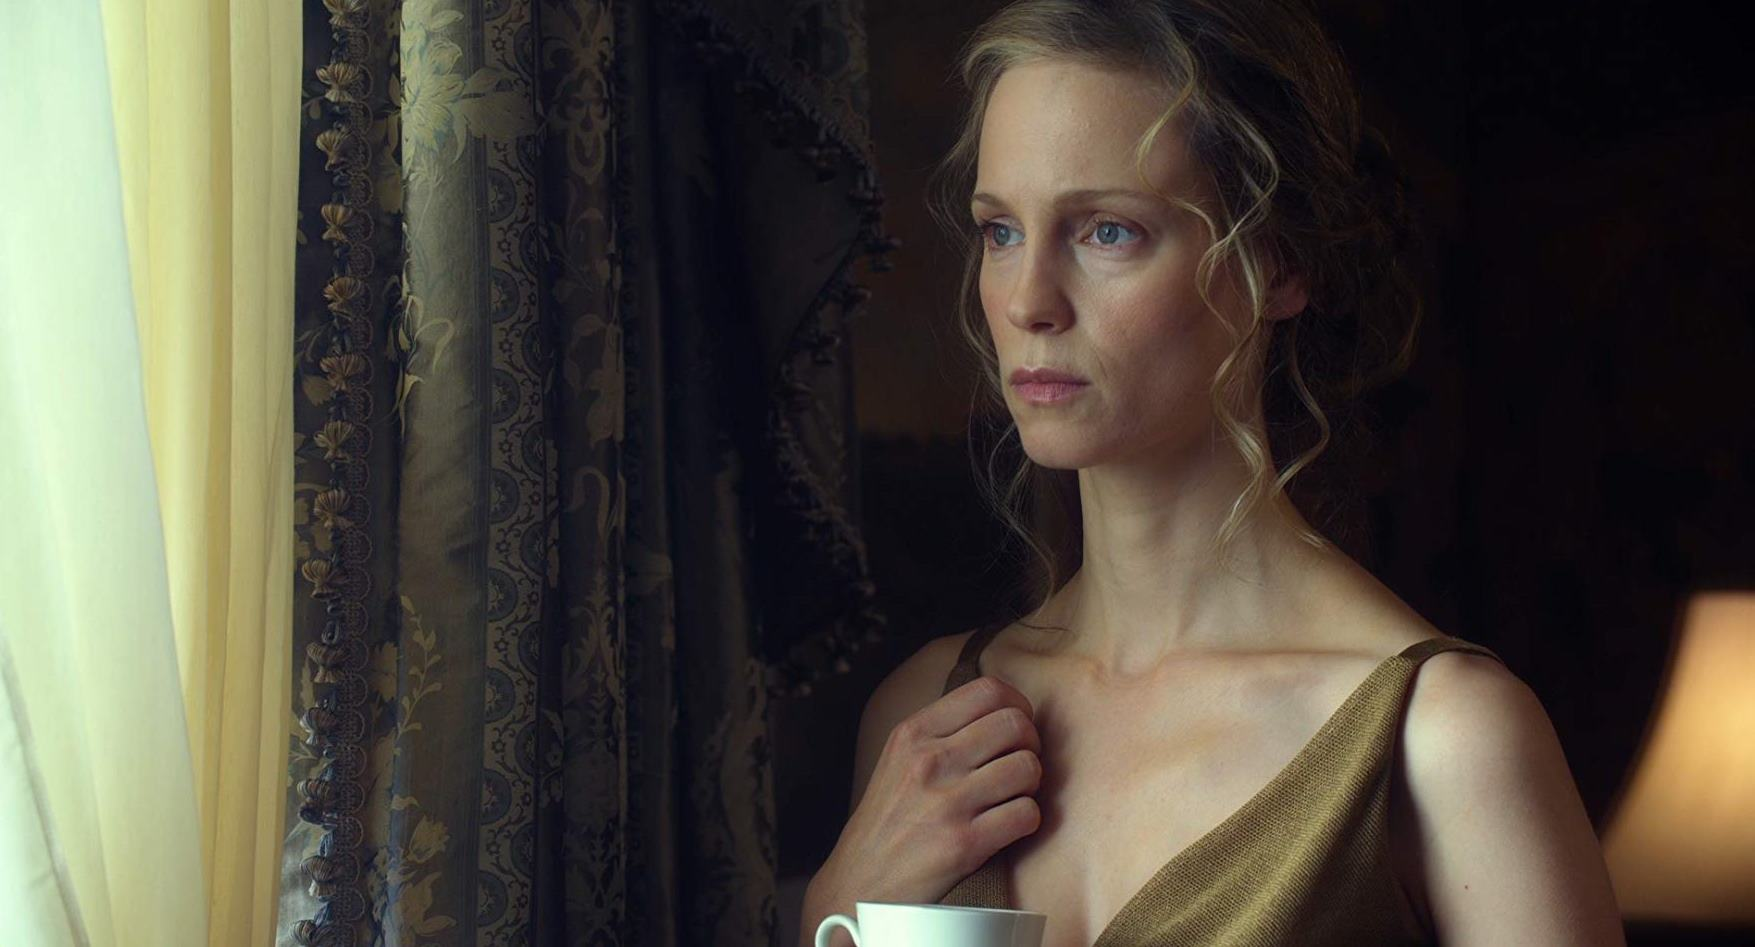 Laura Regan, the replacement as Ayn Rand's railroad tycoon heroine Dagny Taggart in Atlas Shrugged III: Who is John Galt? (2014)